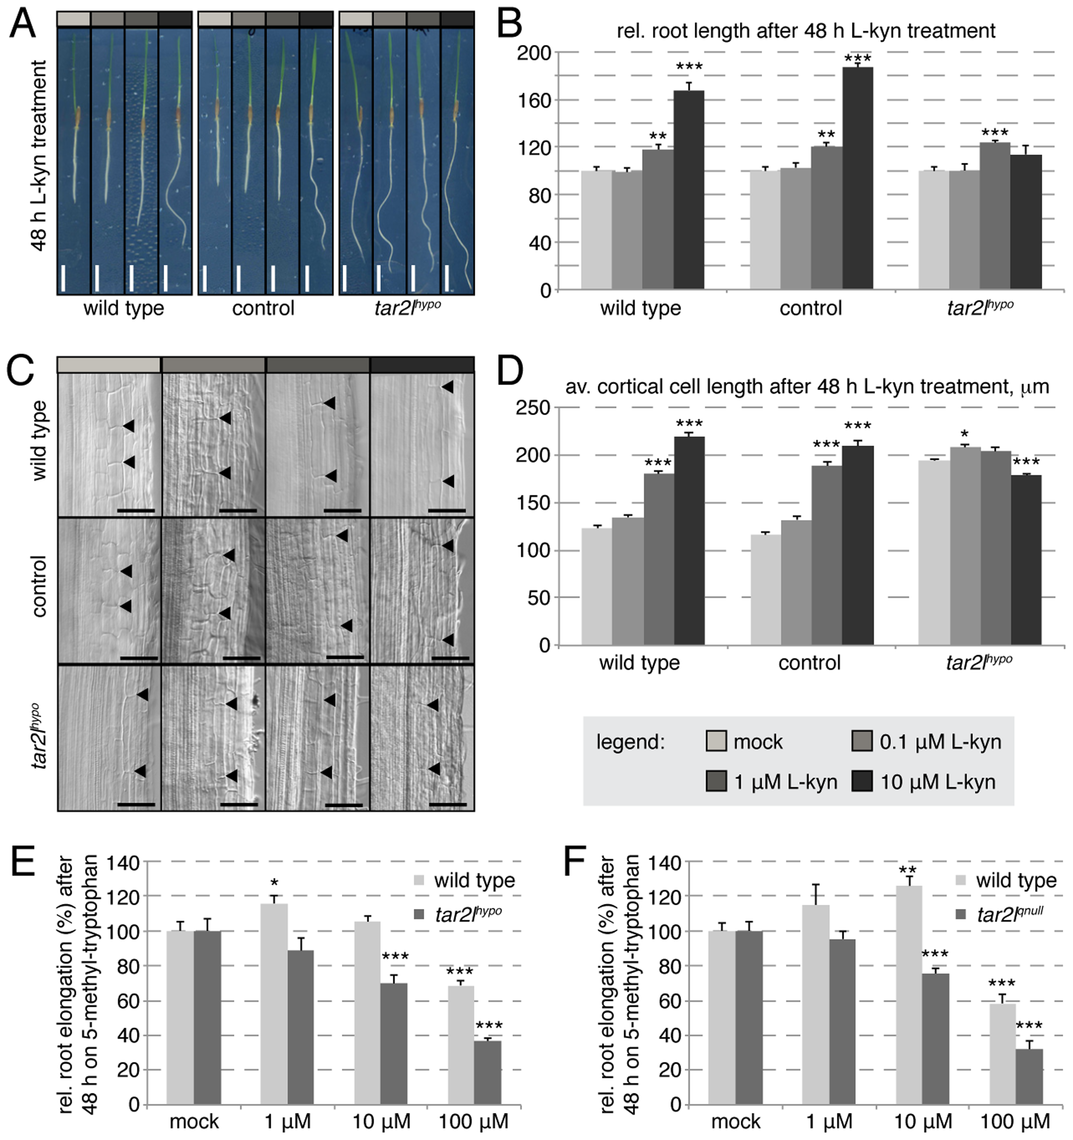 Effect of L-kynerunine (L-kyn) treatment on root elongation of different genotypes.